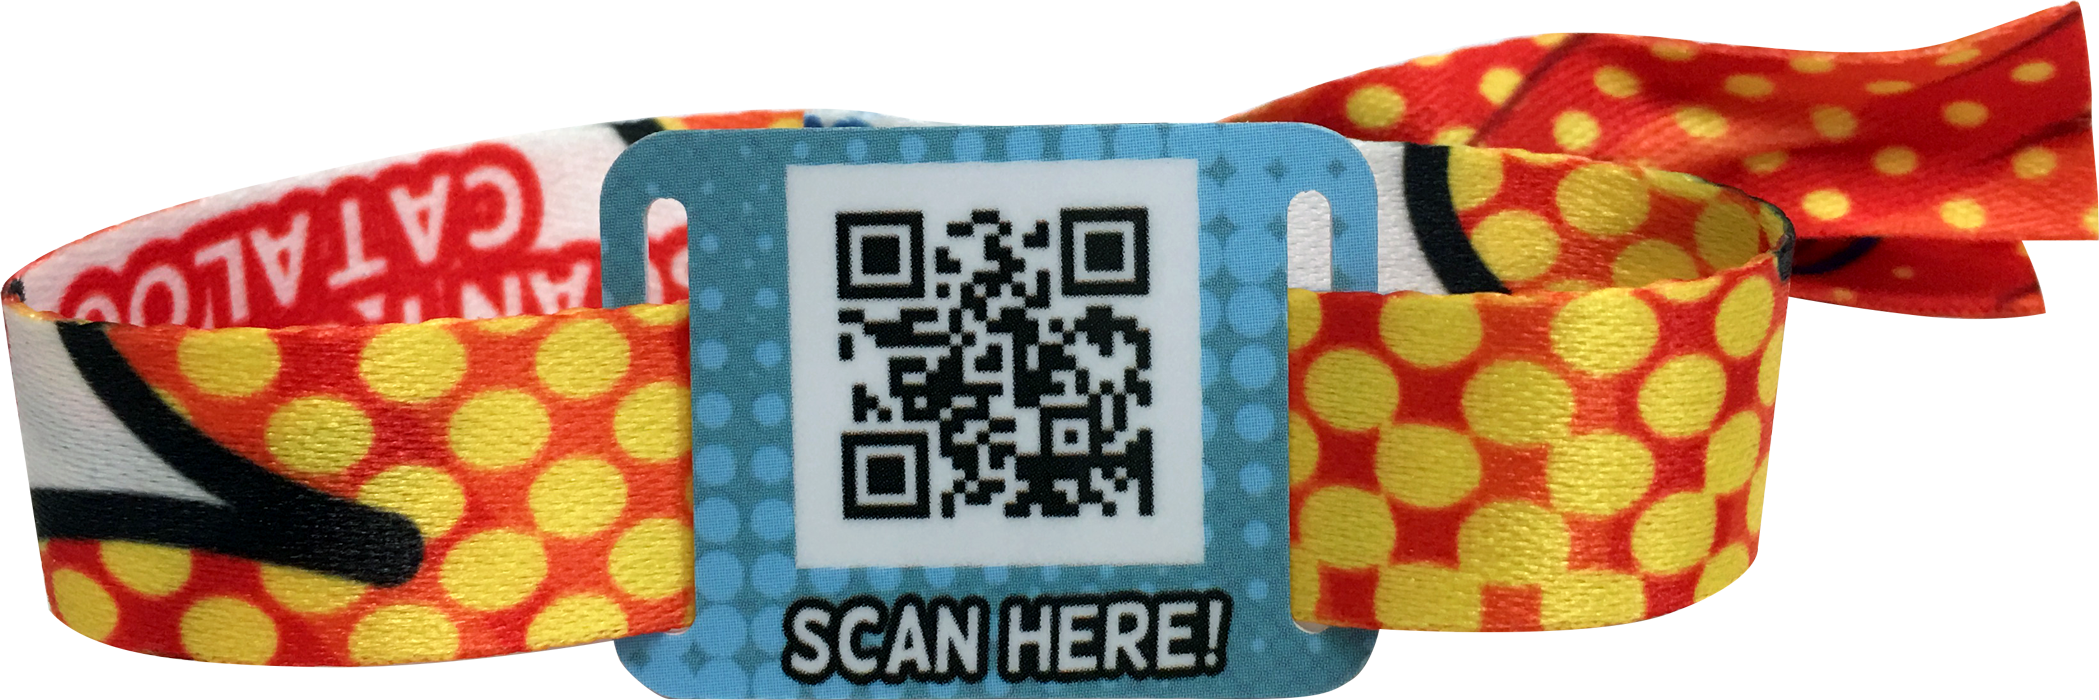 Sublimation Printed Fabric Wristbands with Sliding RFID Tags